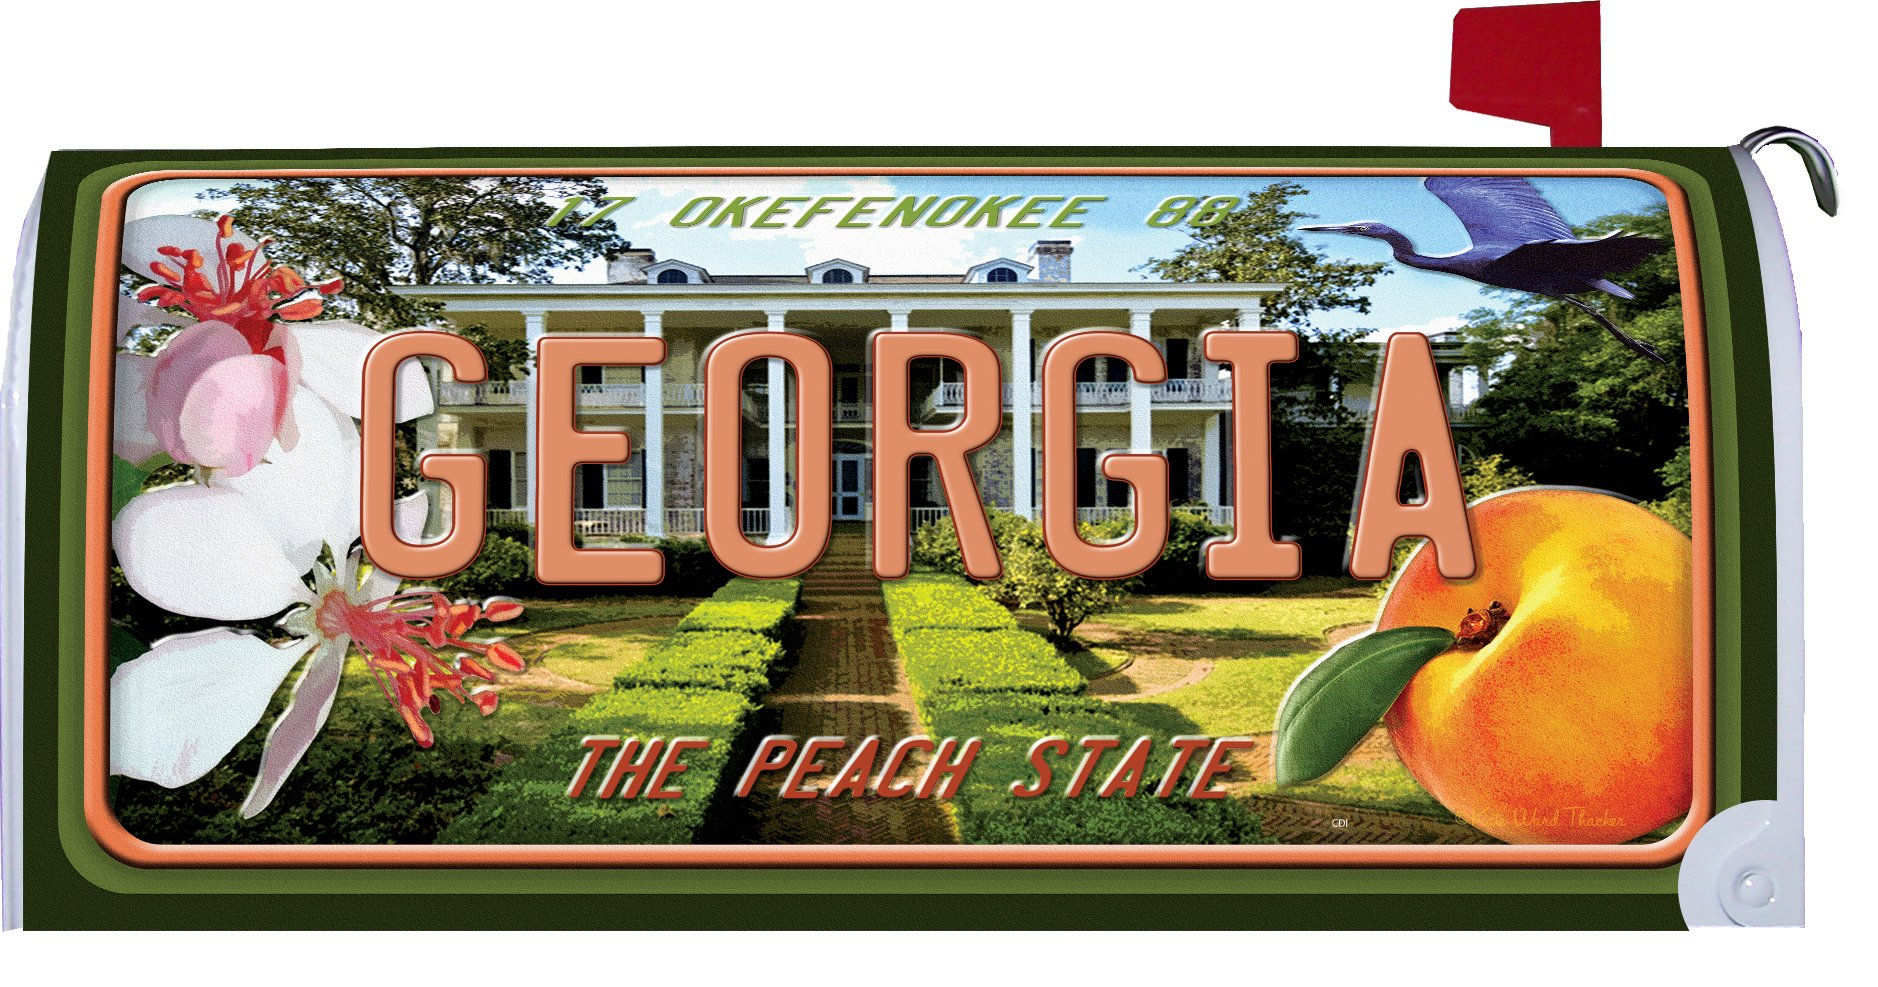 Georgia - Great Escapes - Mailbox Makover Cover - Vinyl witn Magnetic Strips for Steel Standard Rural Mailbox - Copyright, Licensed and Trademarked by Custom Decor Inc.